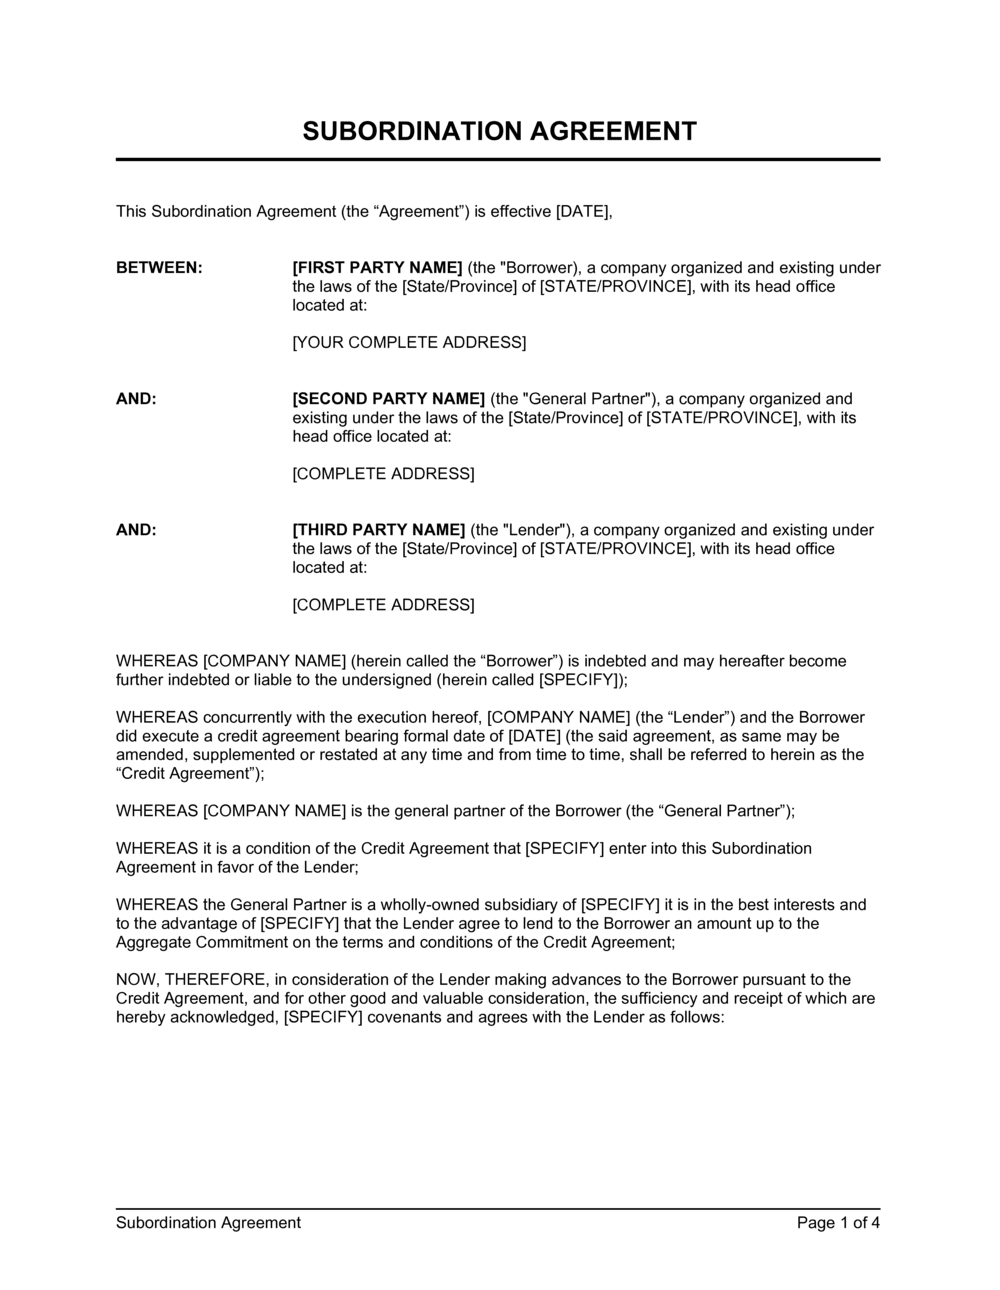 Business-in-a-Box's Subordination Agreement Template